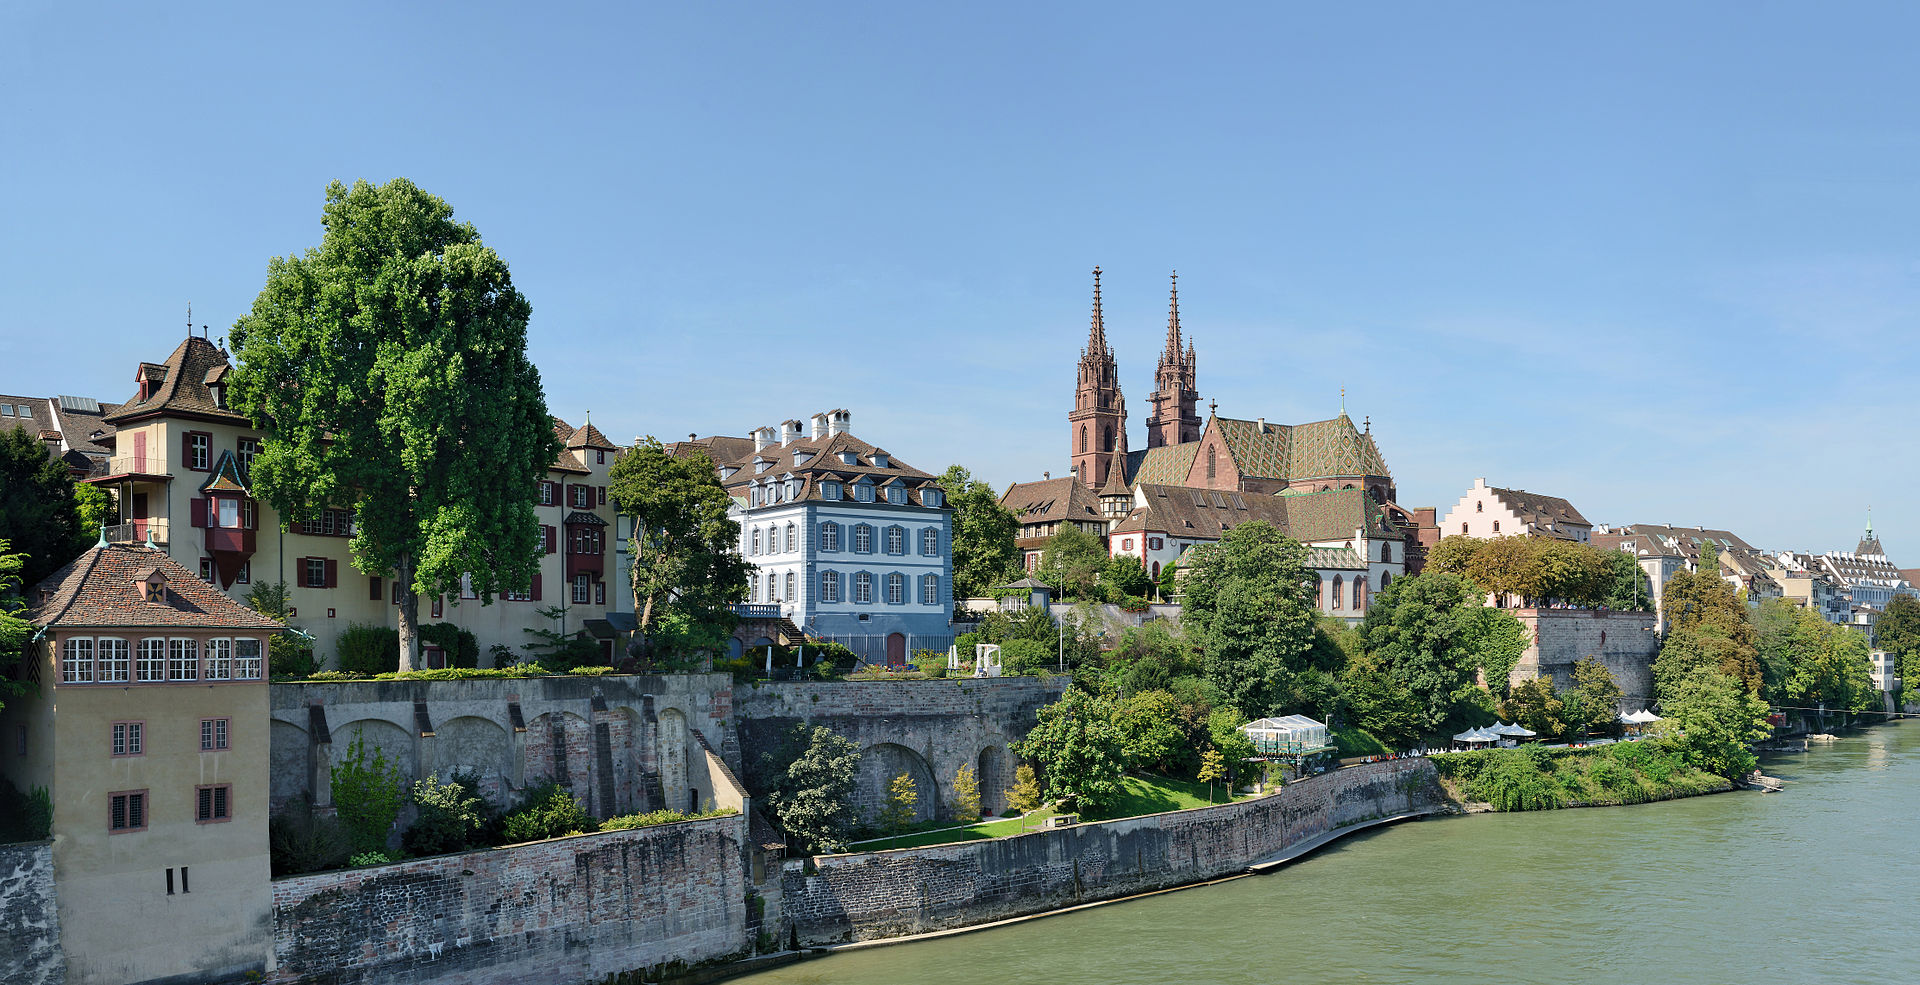 View from the Rhine